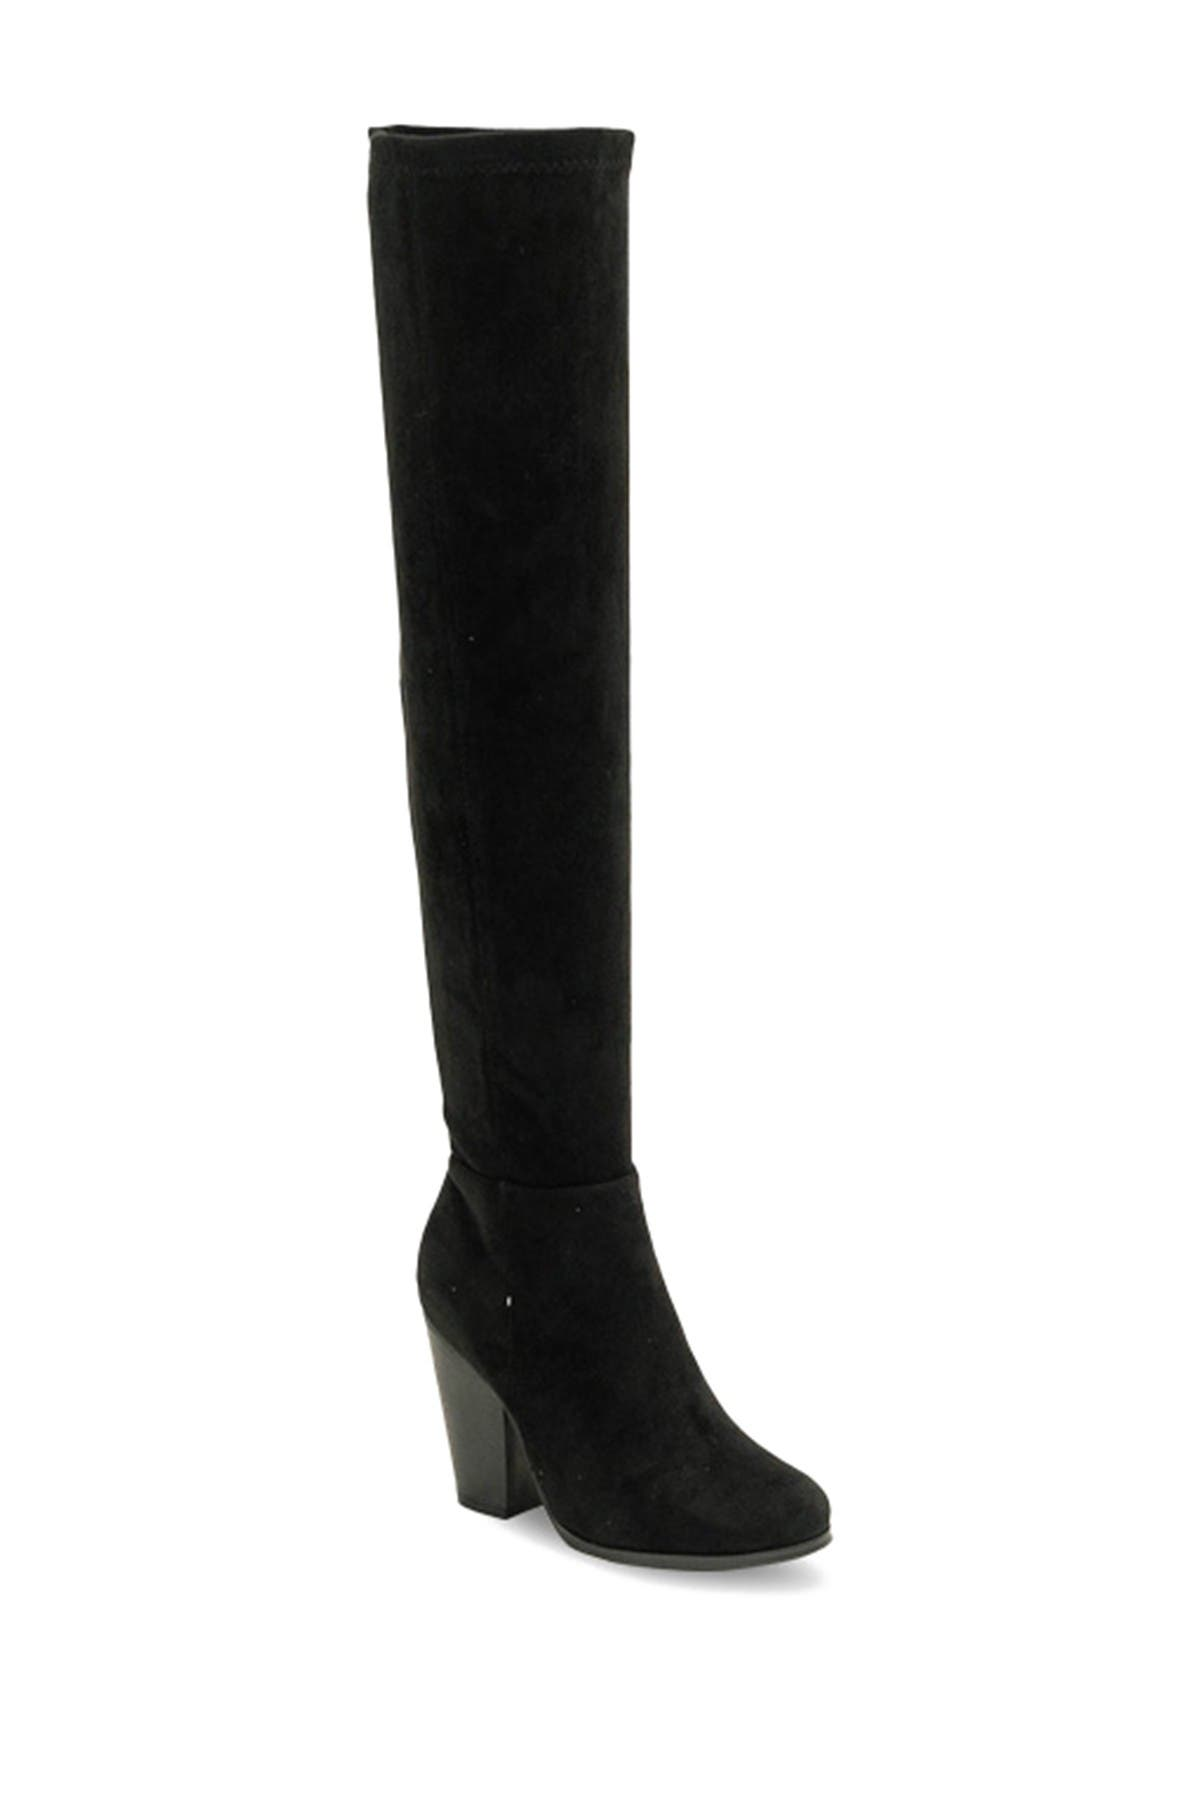 Image of Chase & Chloe Max 2 Over The Knee Boot